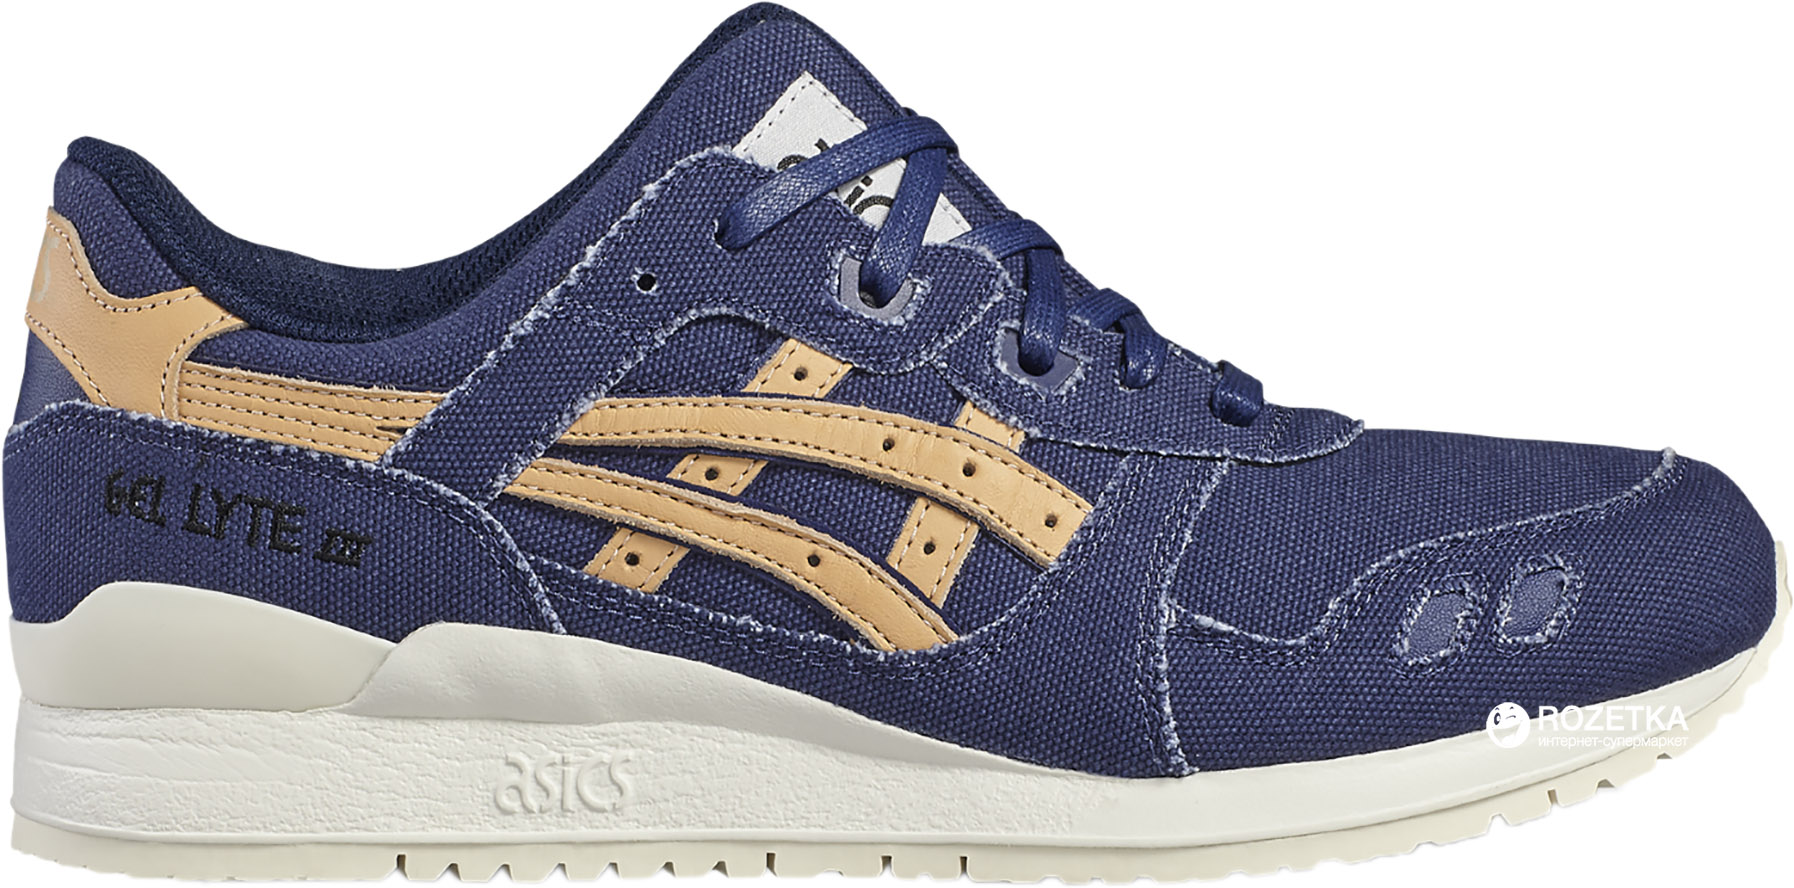 6d3ad73850 ROZETKA | Кроссовки ASICS At Gel-Lyte III Blu M c-H7E2N-4971 42.5 (9 ...